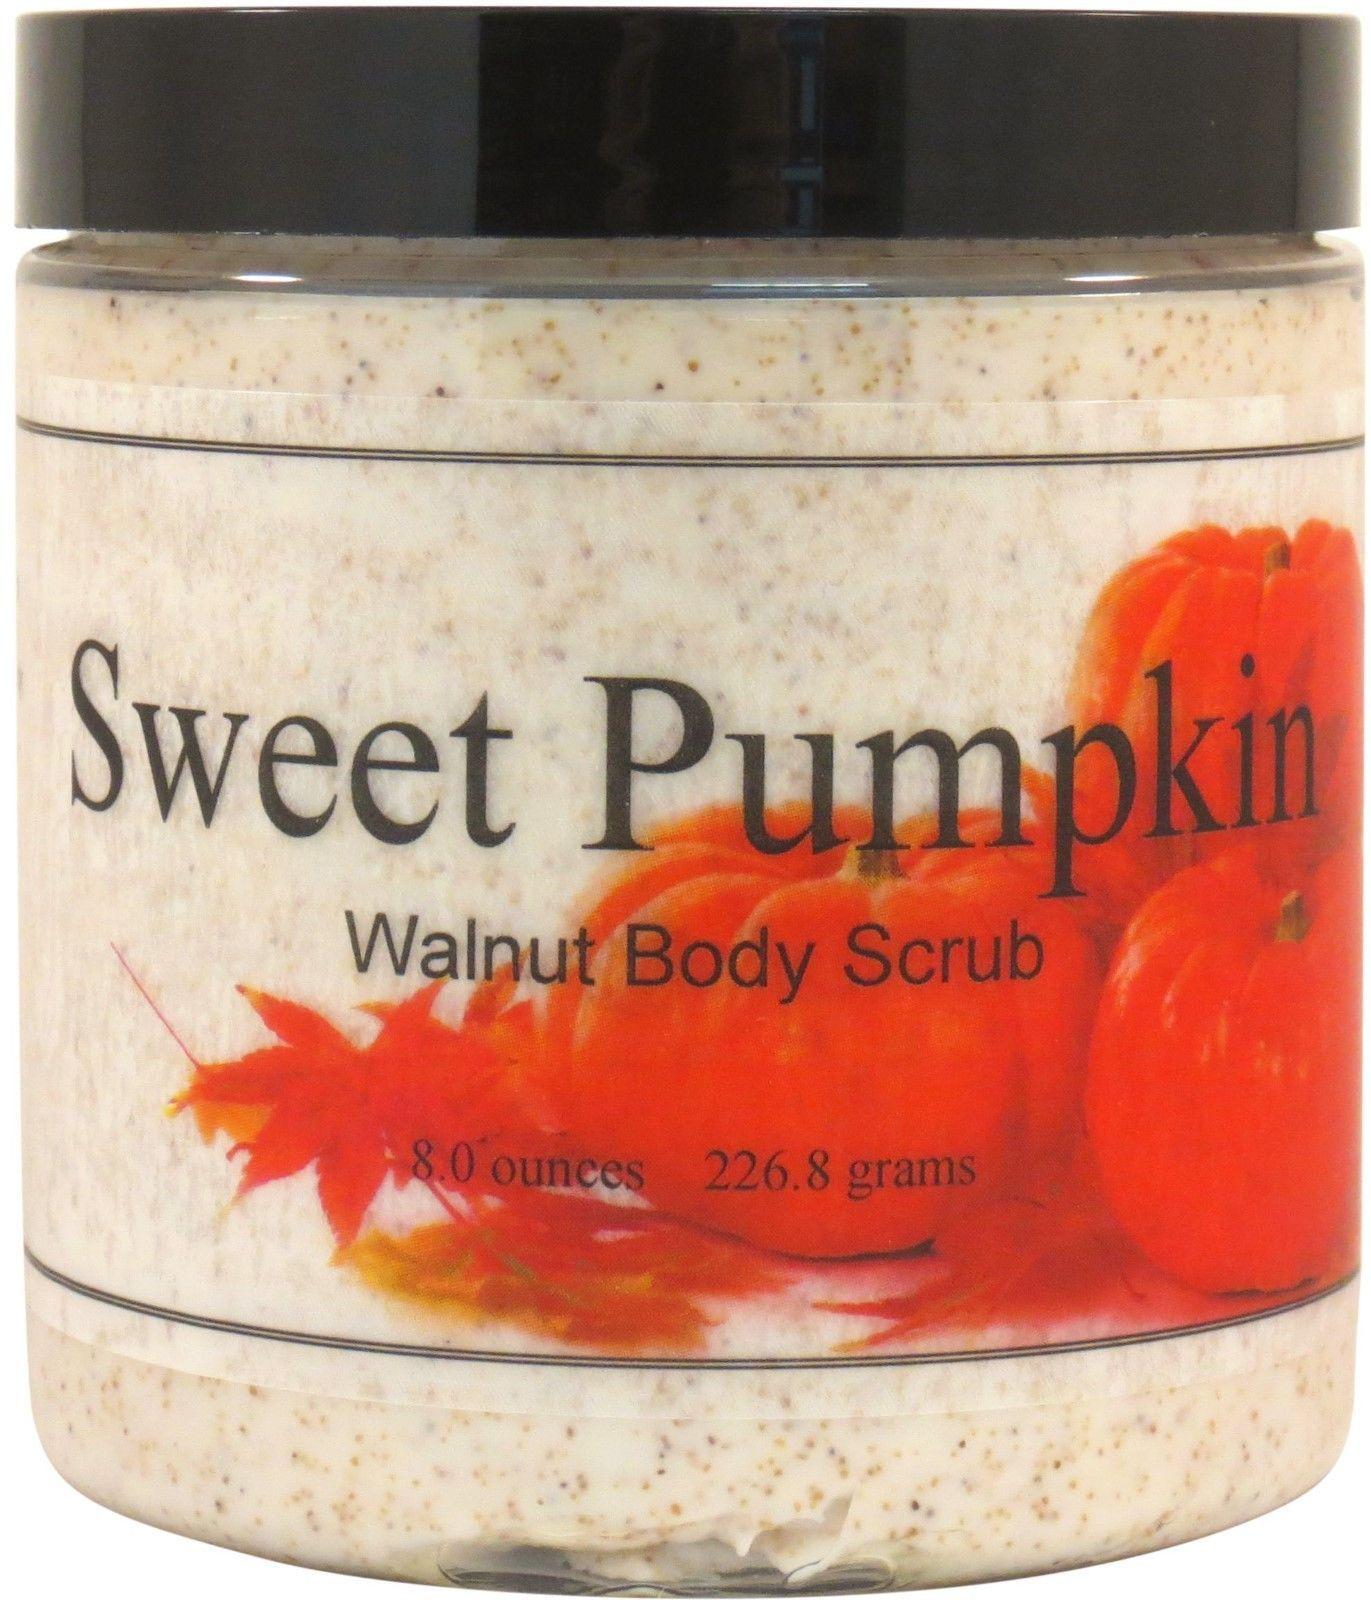 Sweet Pumpkin Walnut Body Scrub